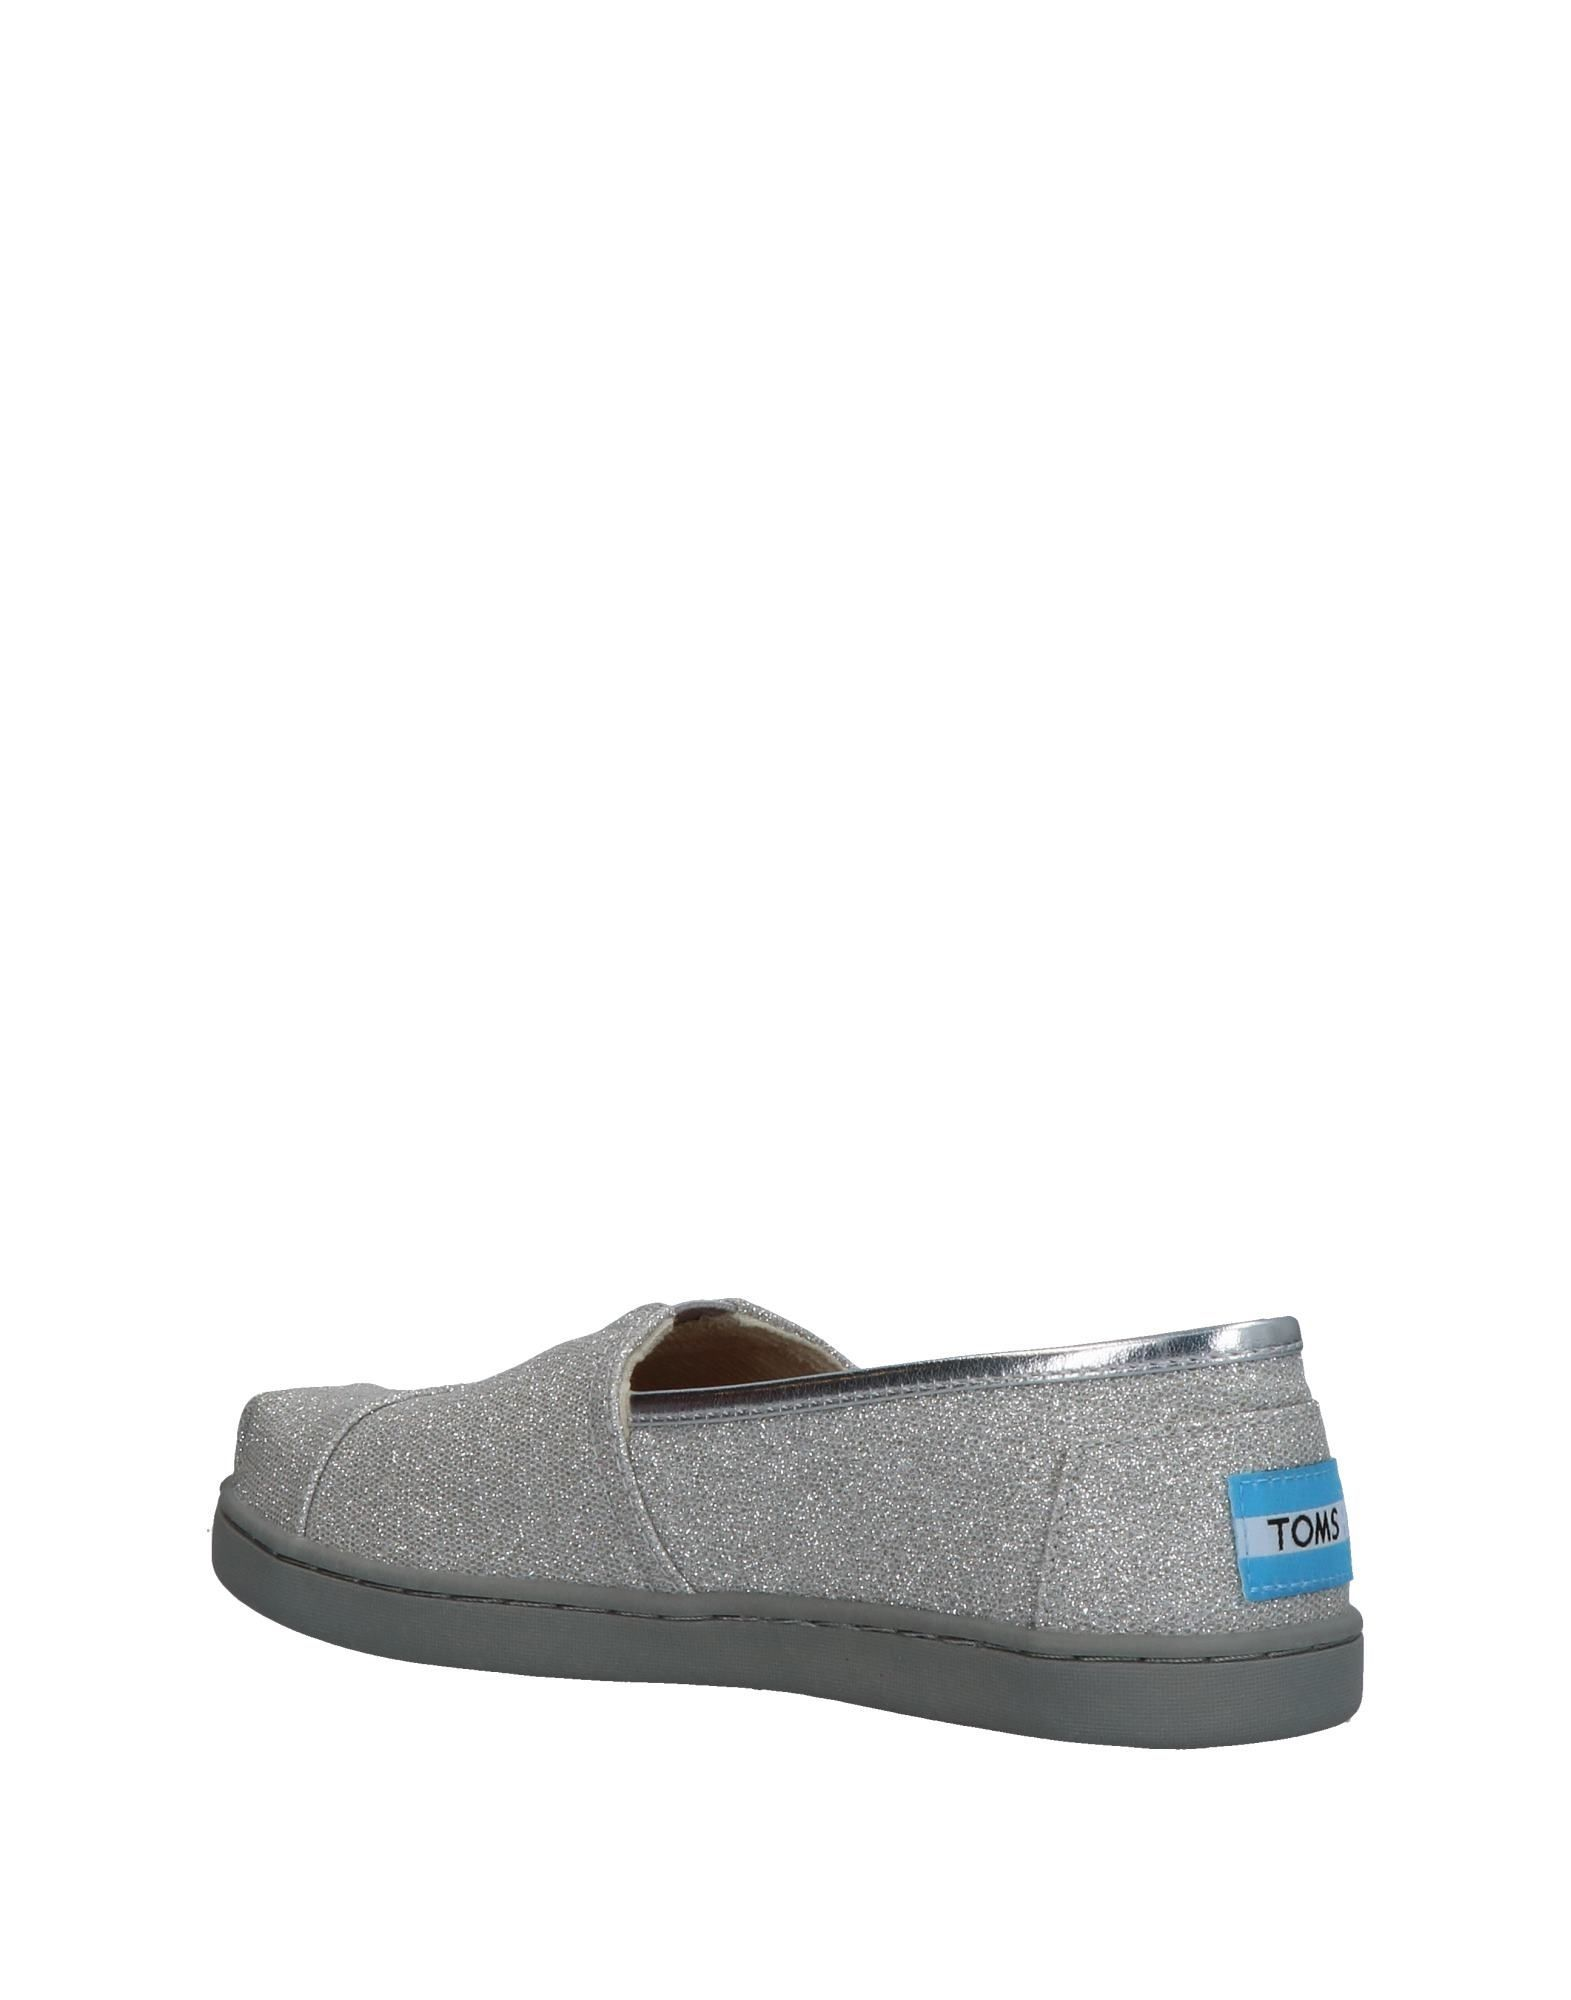 Toms Silver Sneakers